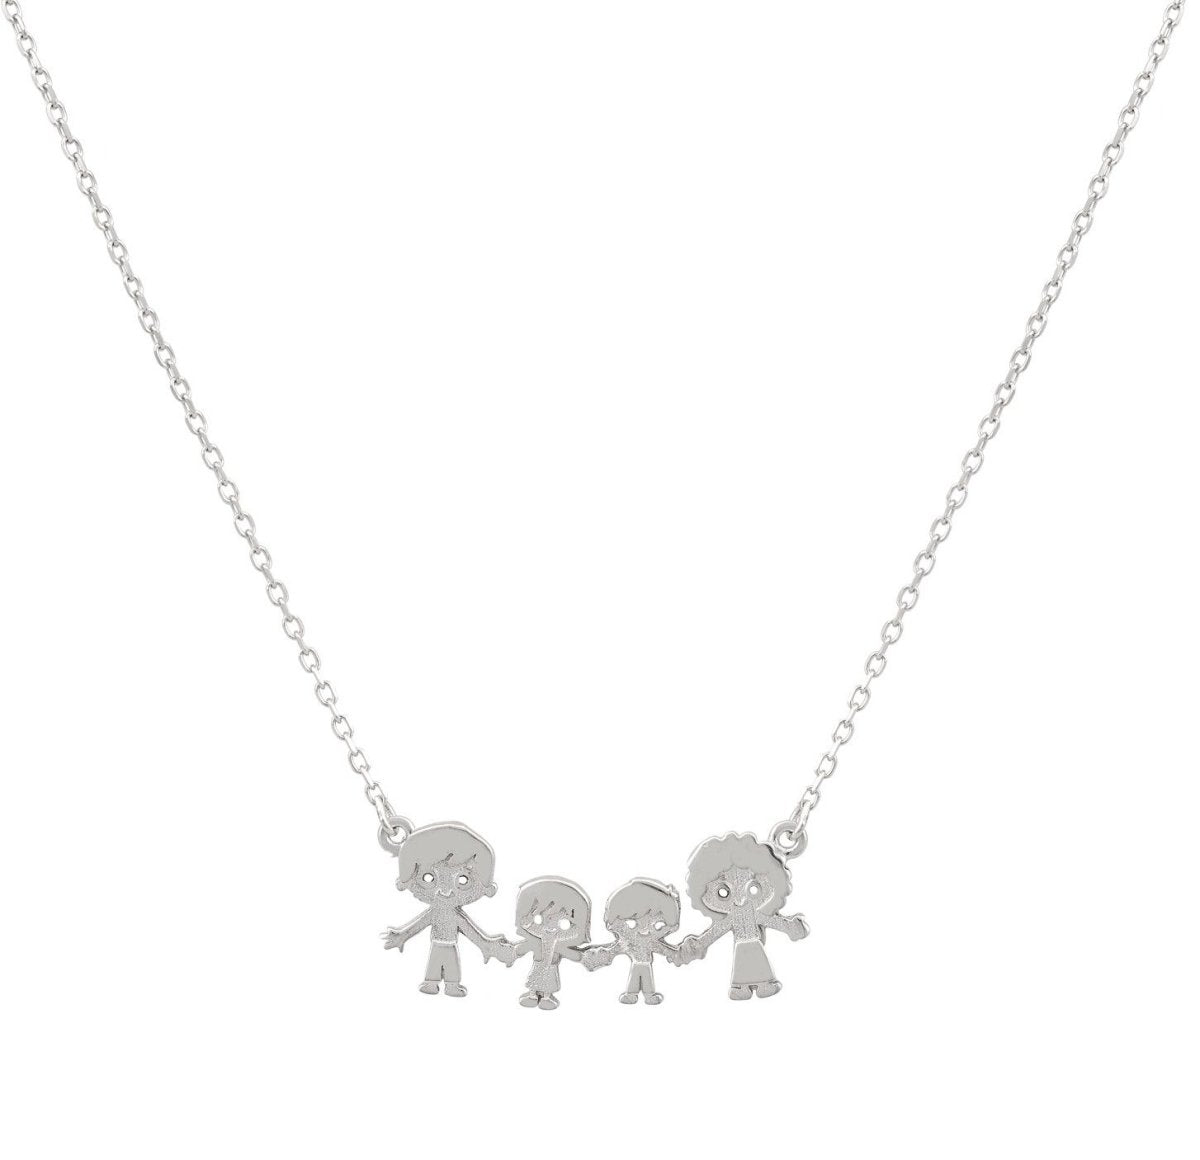 G5604W Necklace with Platinum Plating - Goldy Jewelry Store